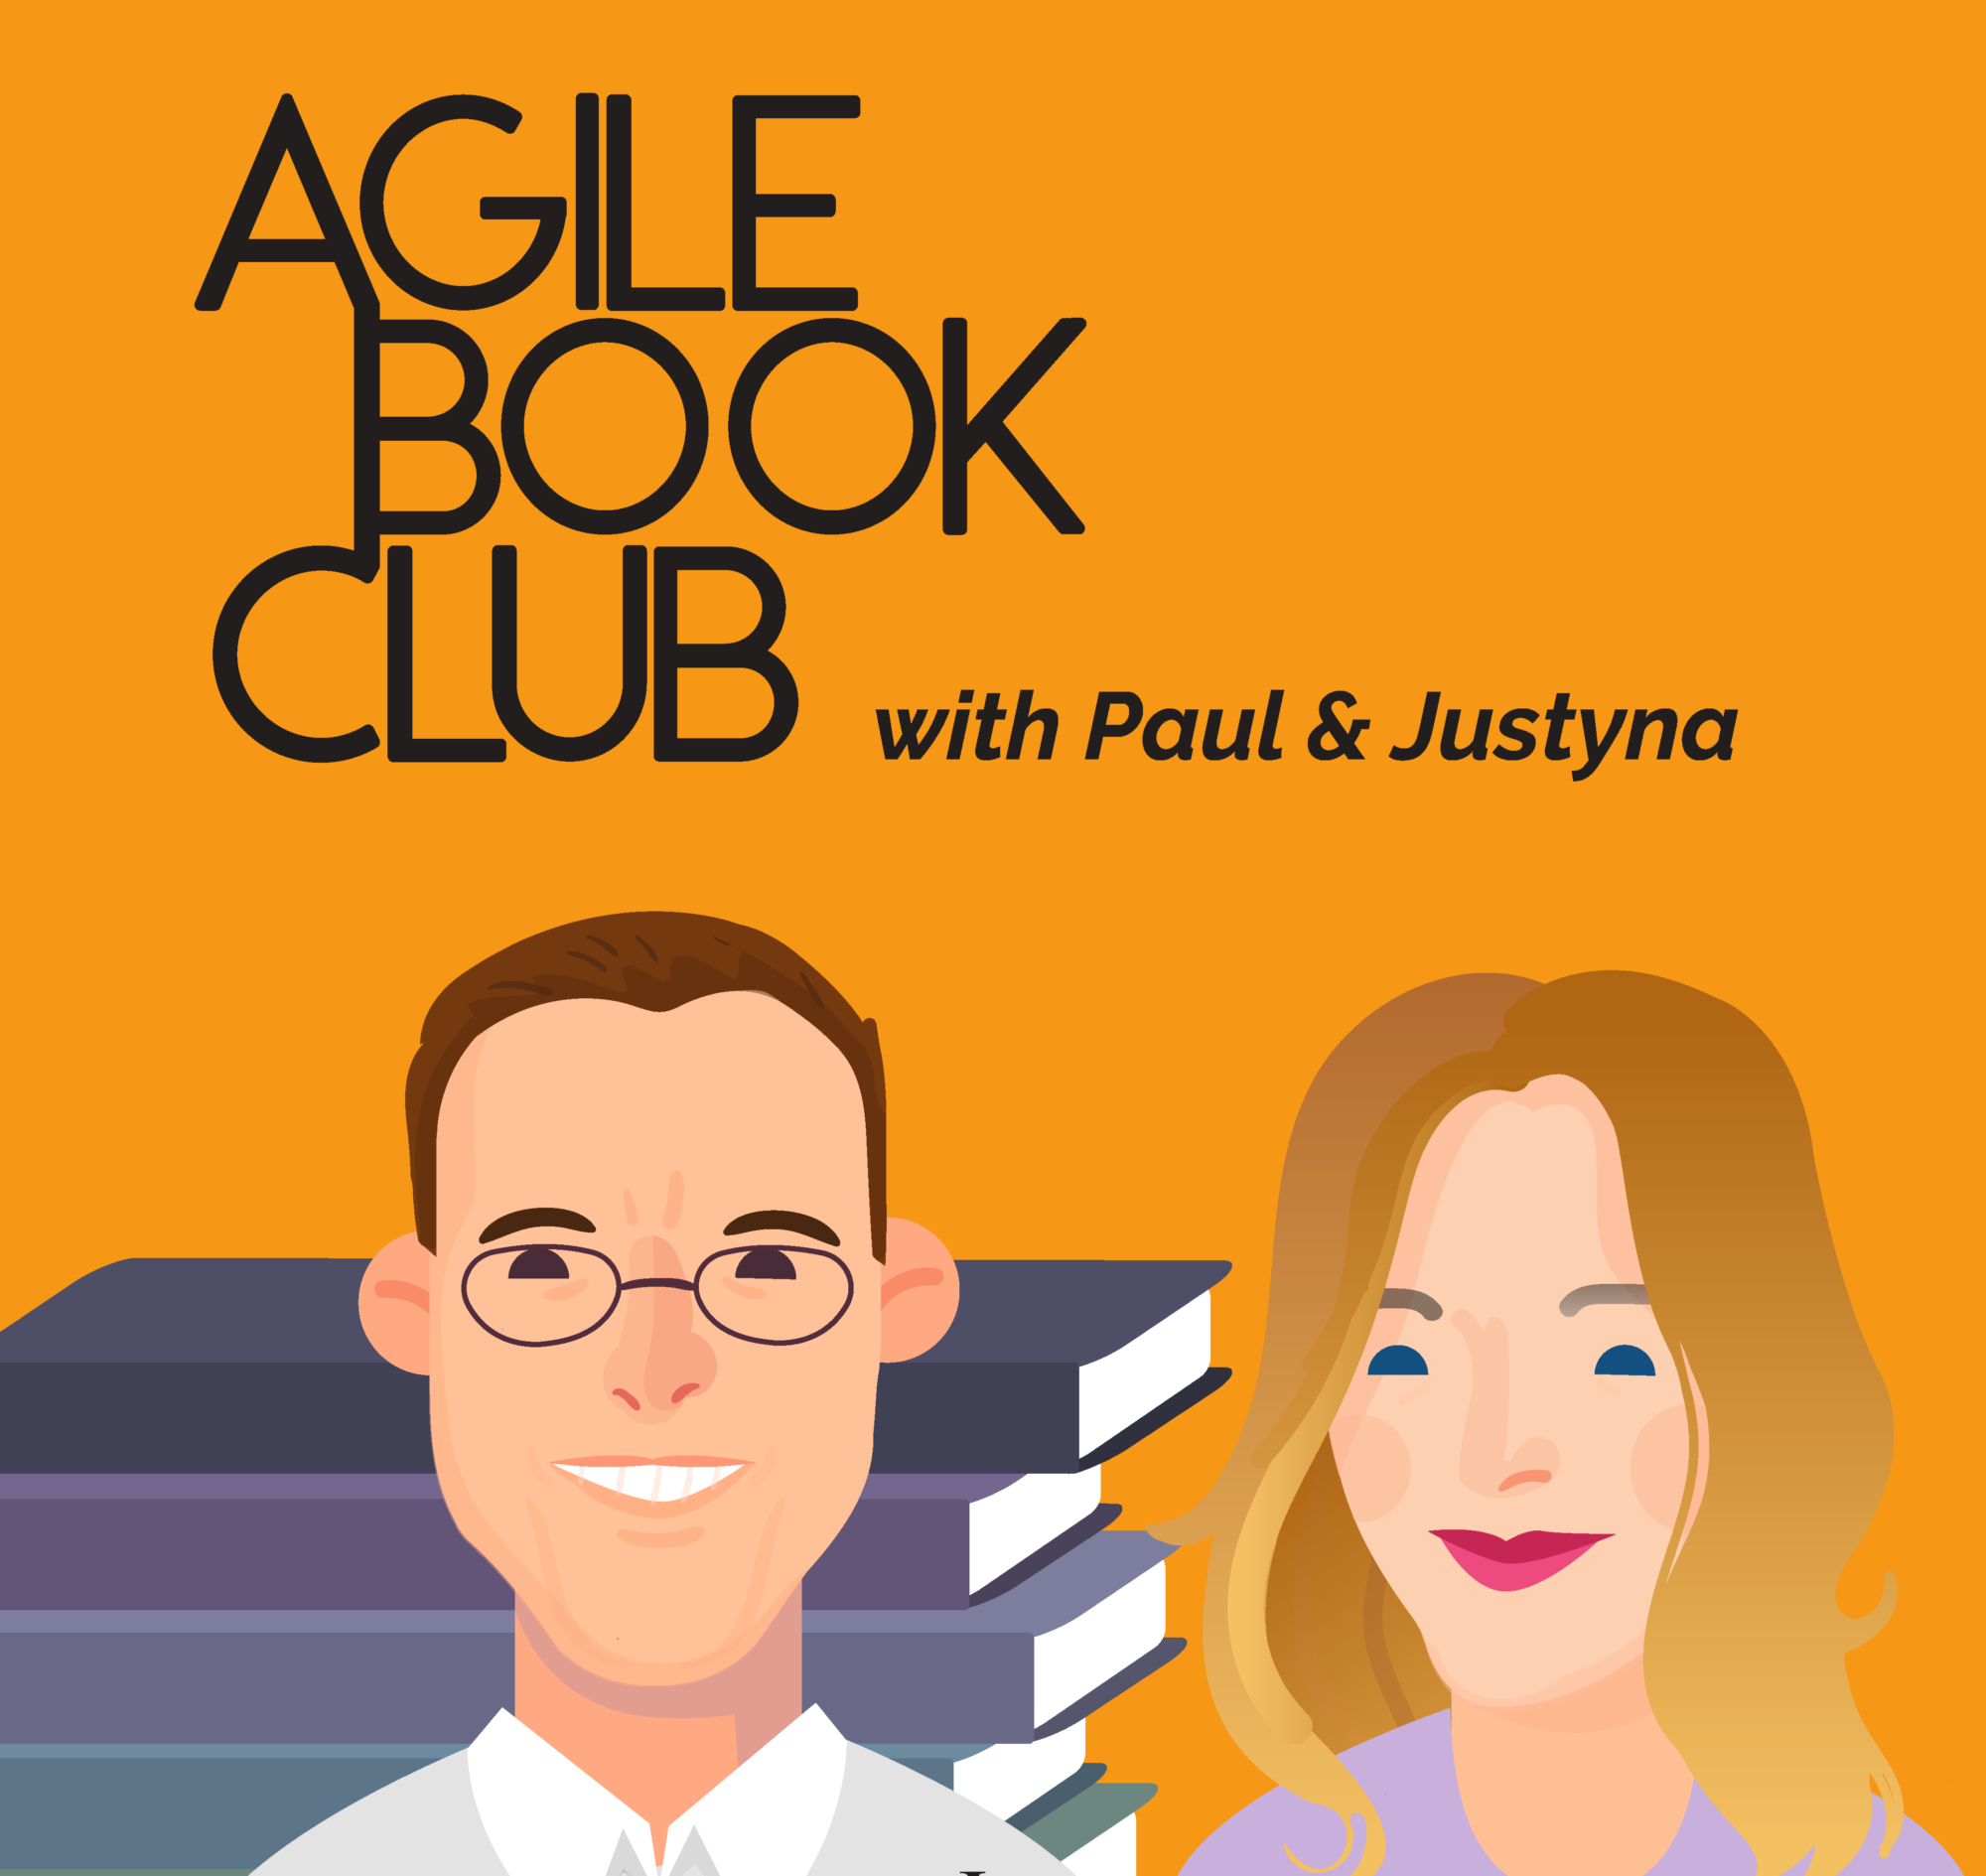 Agile Podcast, Business Podcast, Management Podcast